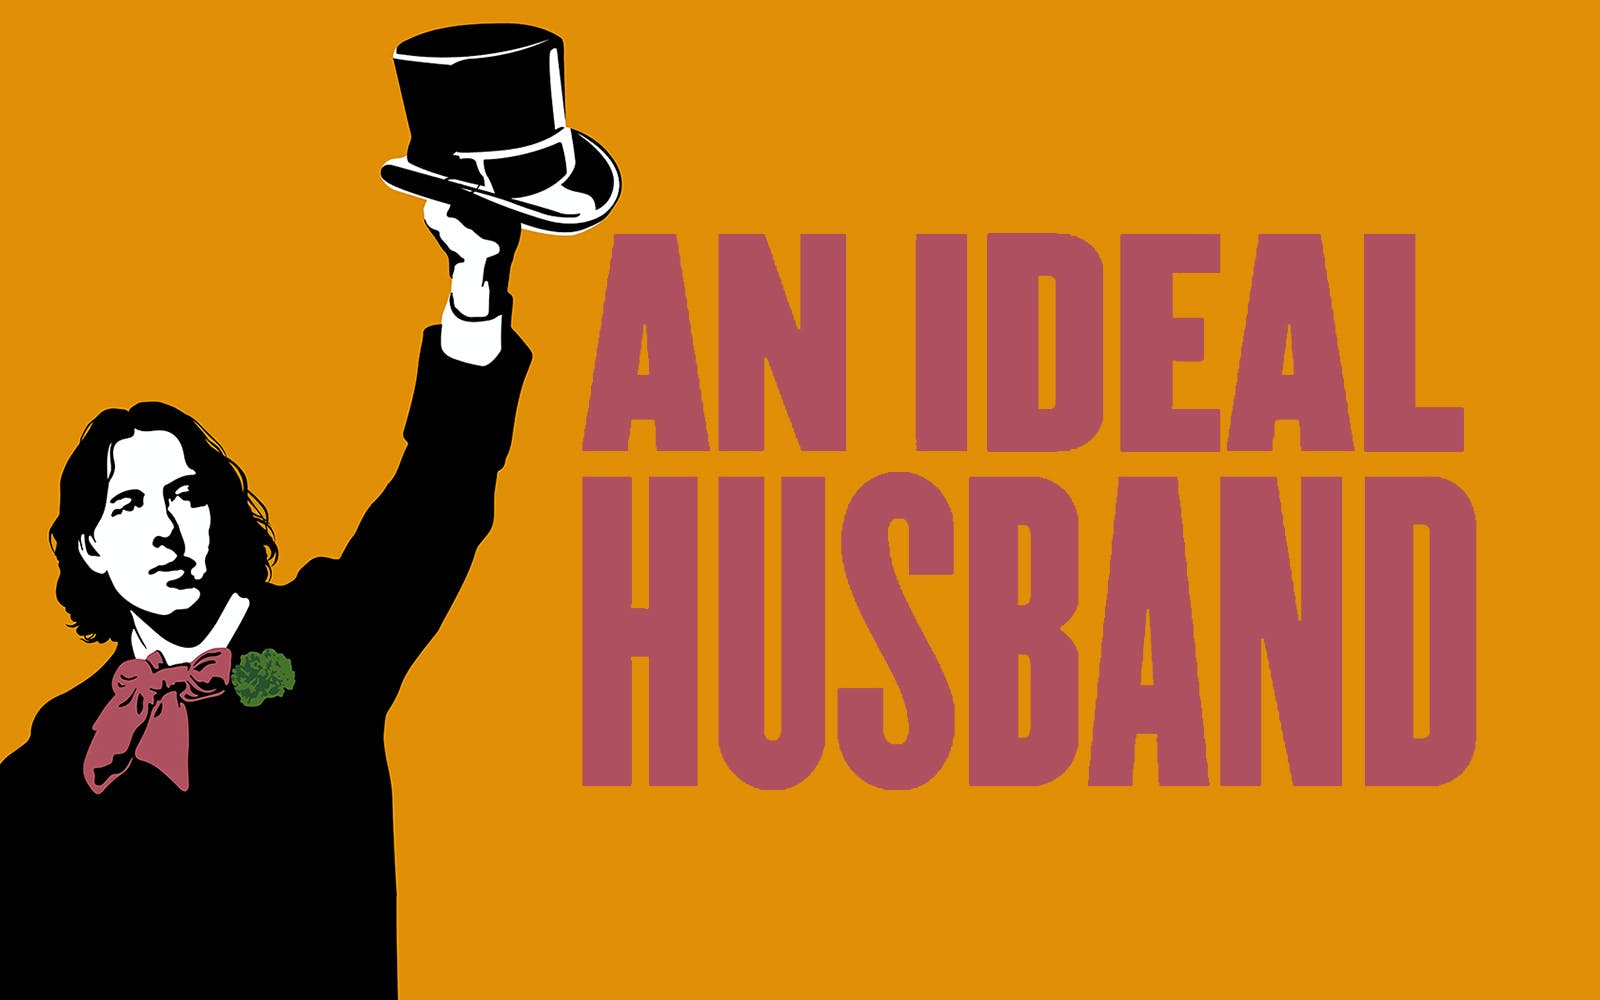 an ideal husband-1